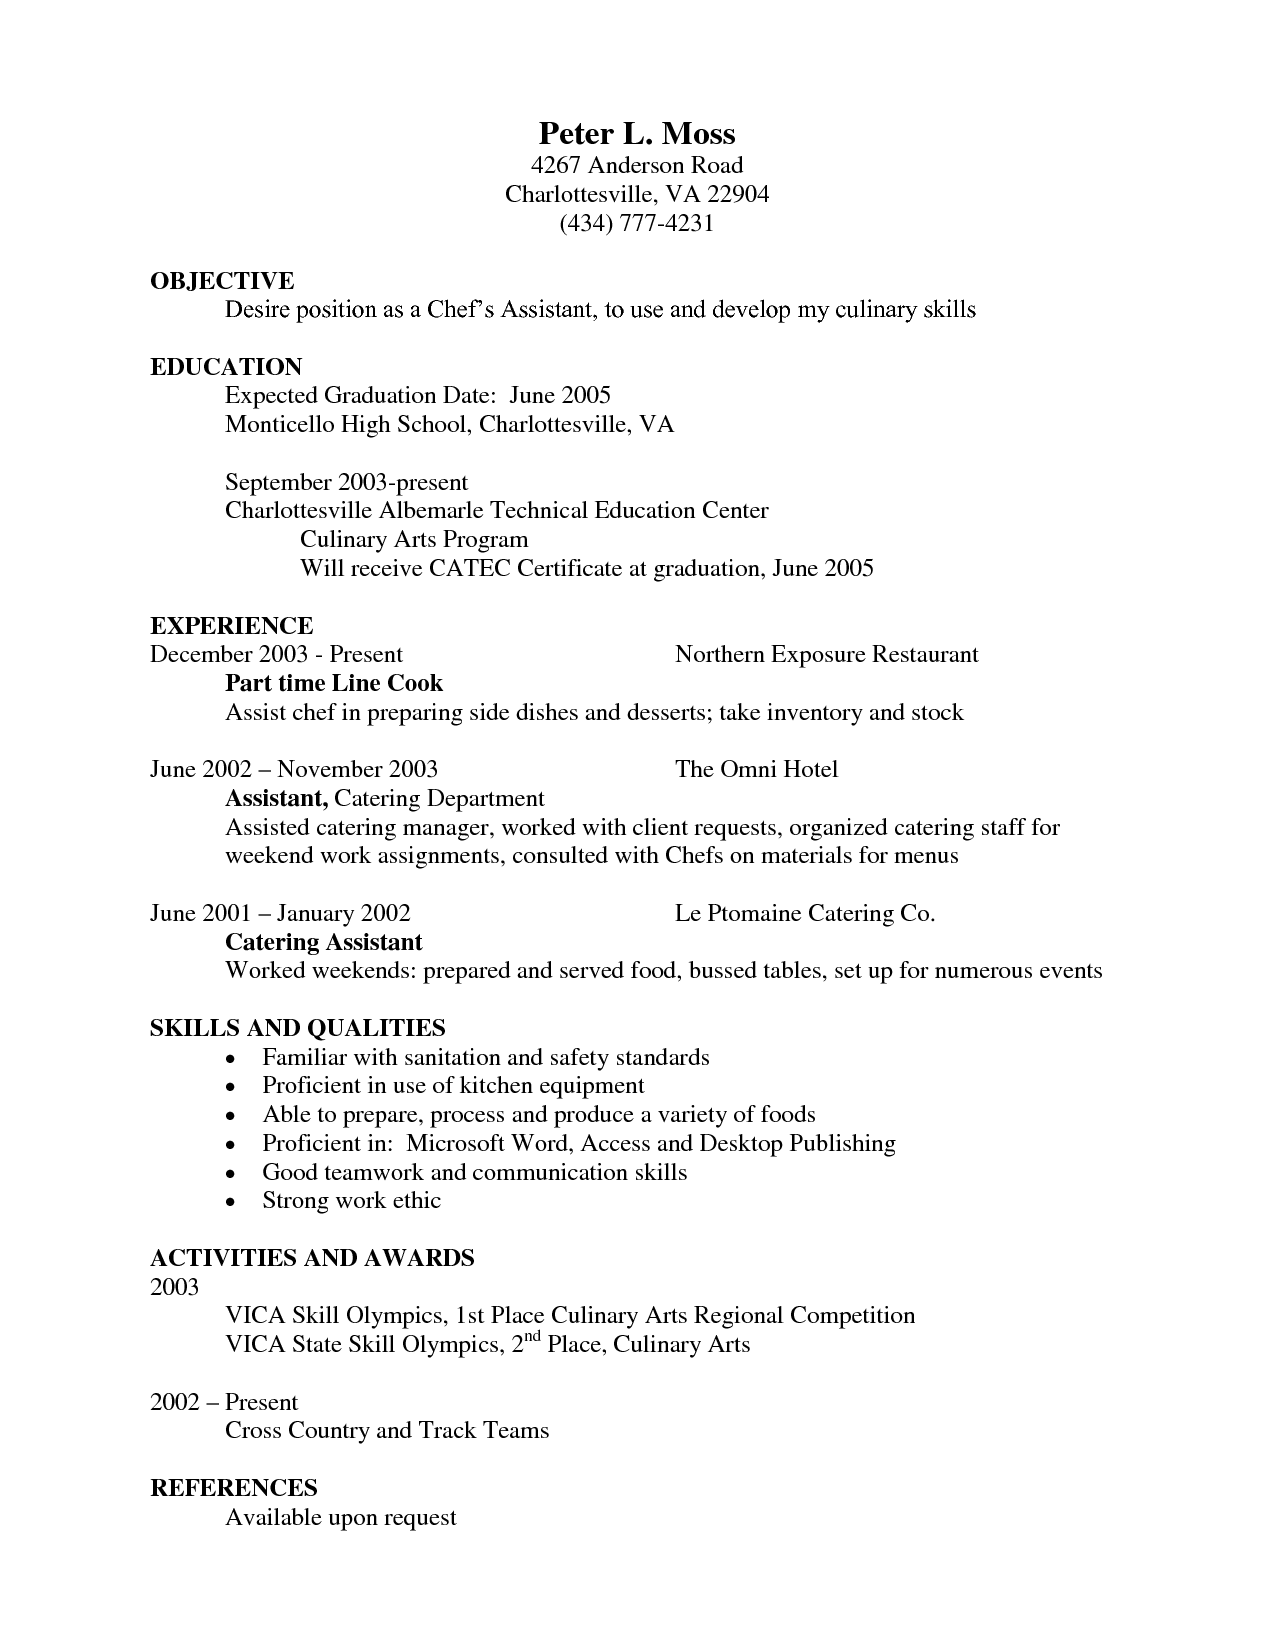 Chef Resume Skills Sample Cook Example Resume Sample For Cooks Cover Letter Resume